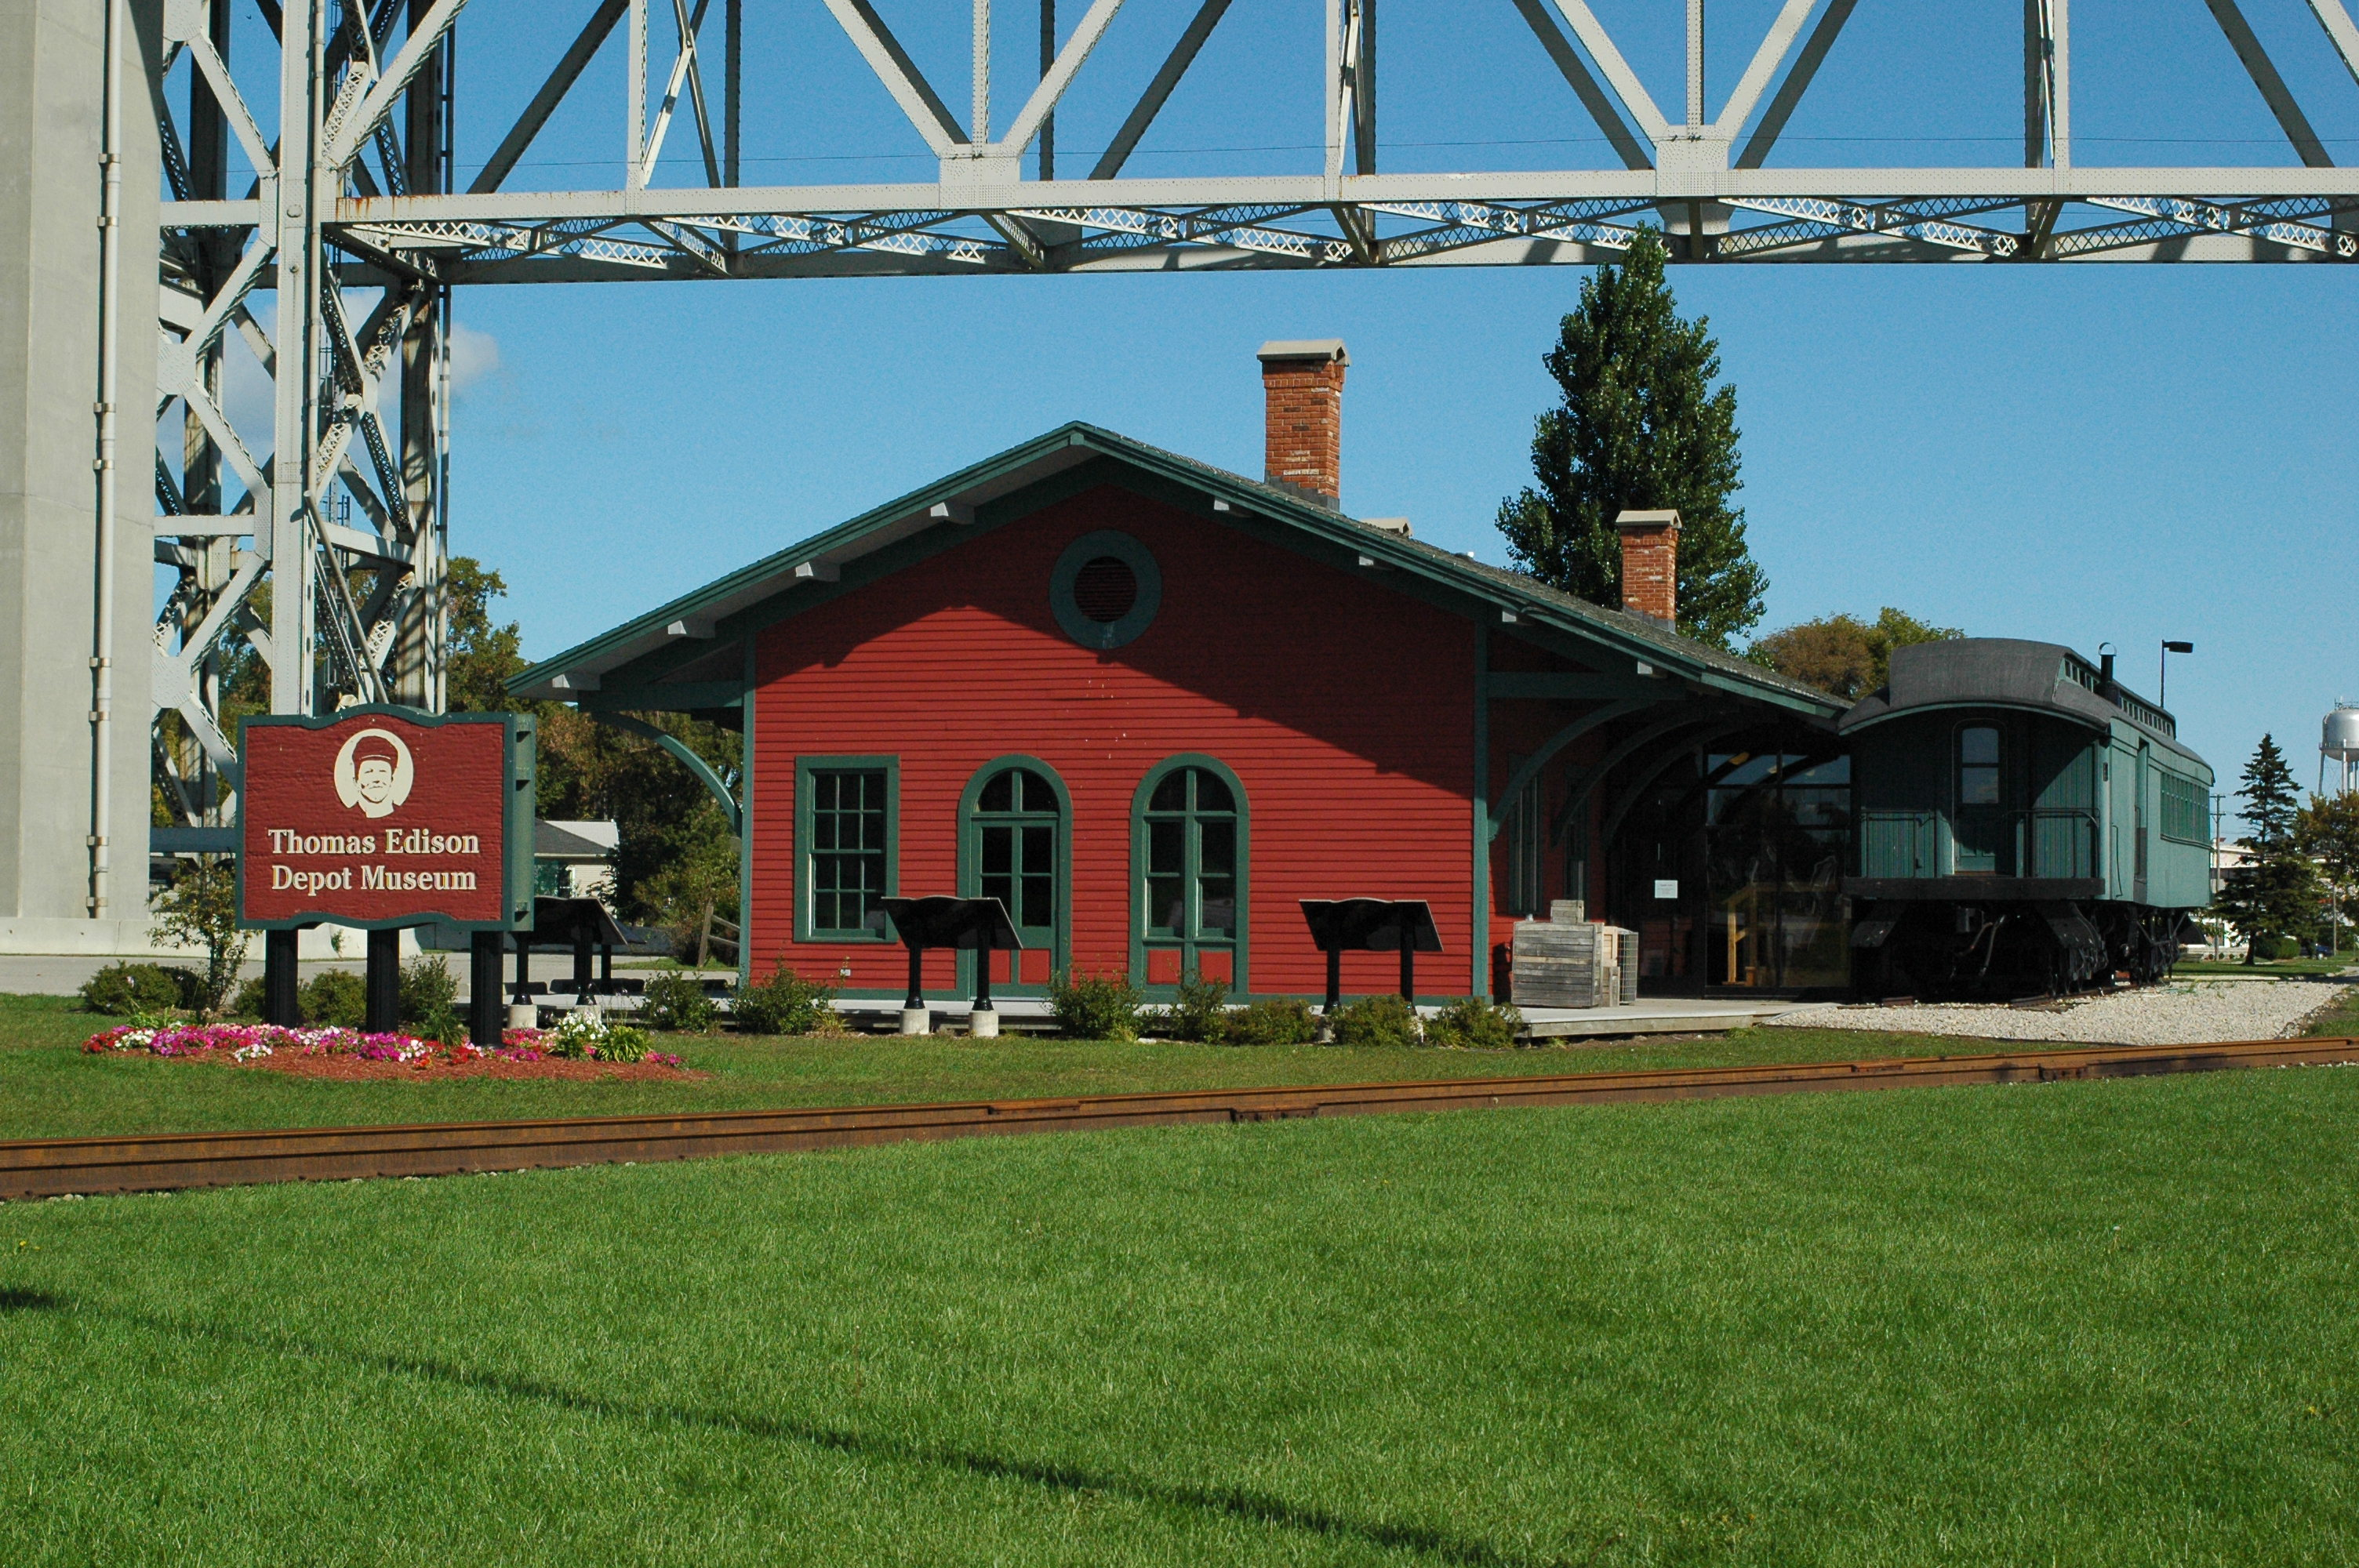 Thomas Edison Depot Museum under the Blue Water Bridge, Port